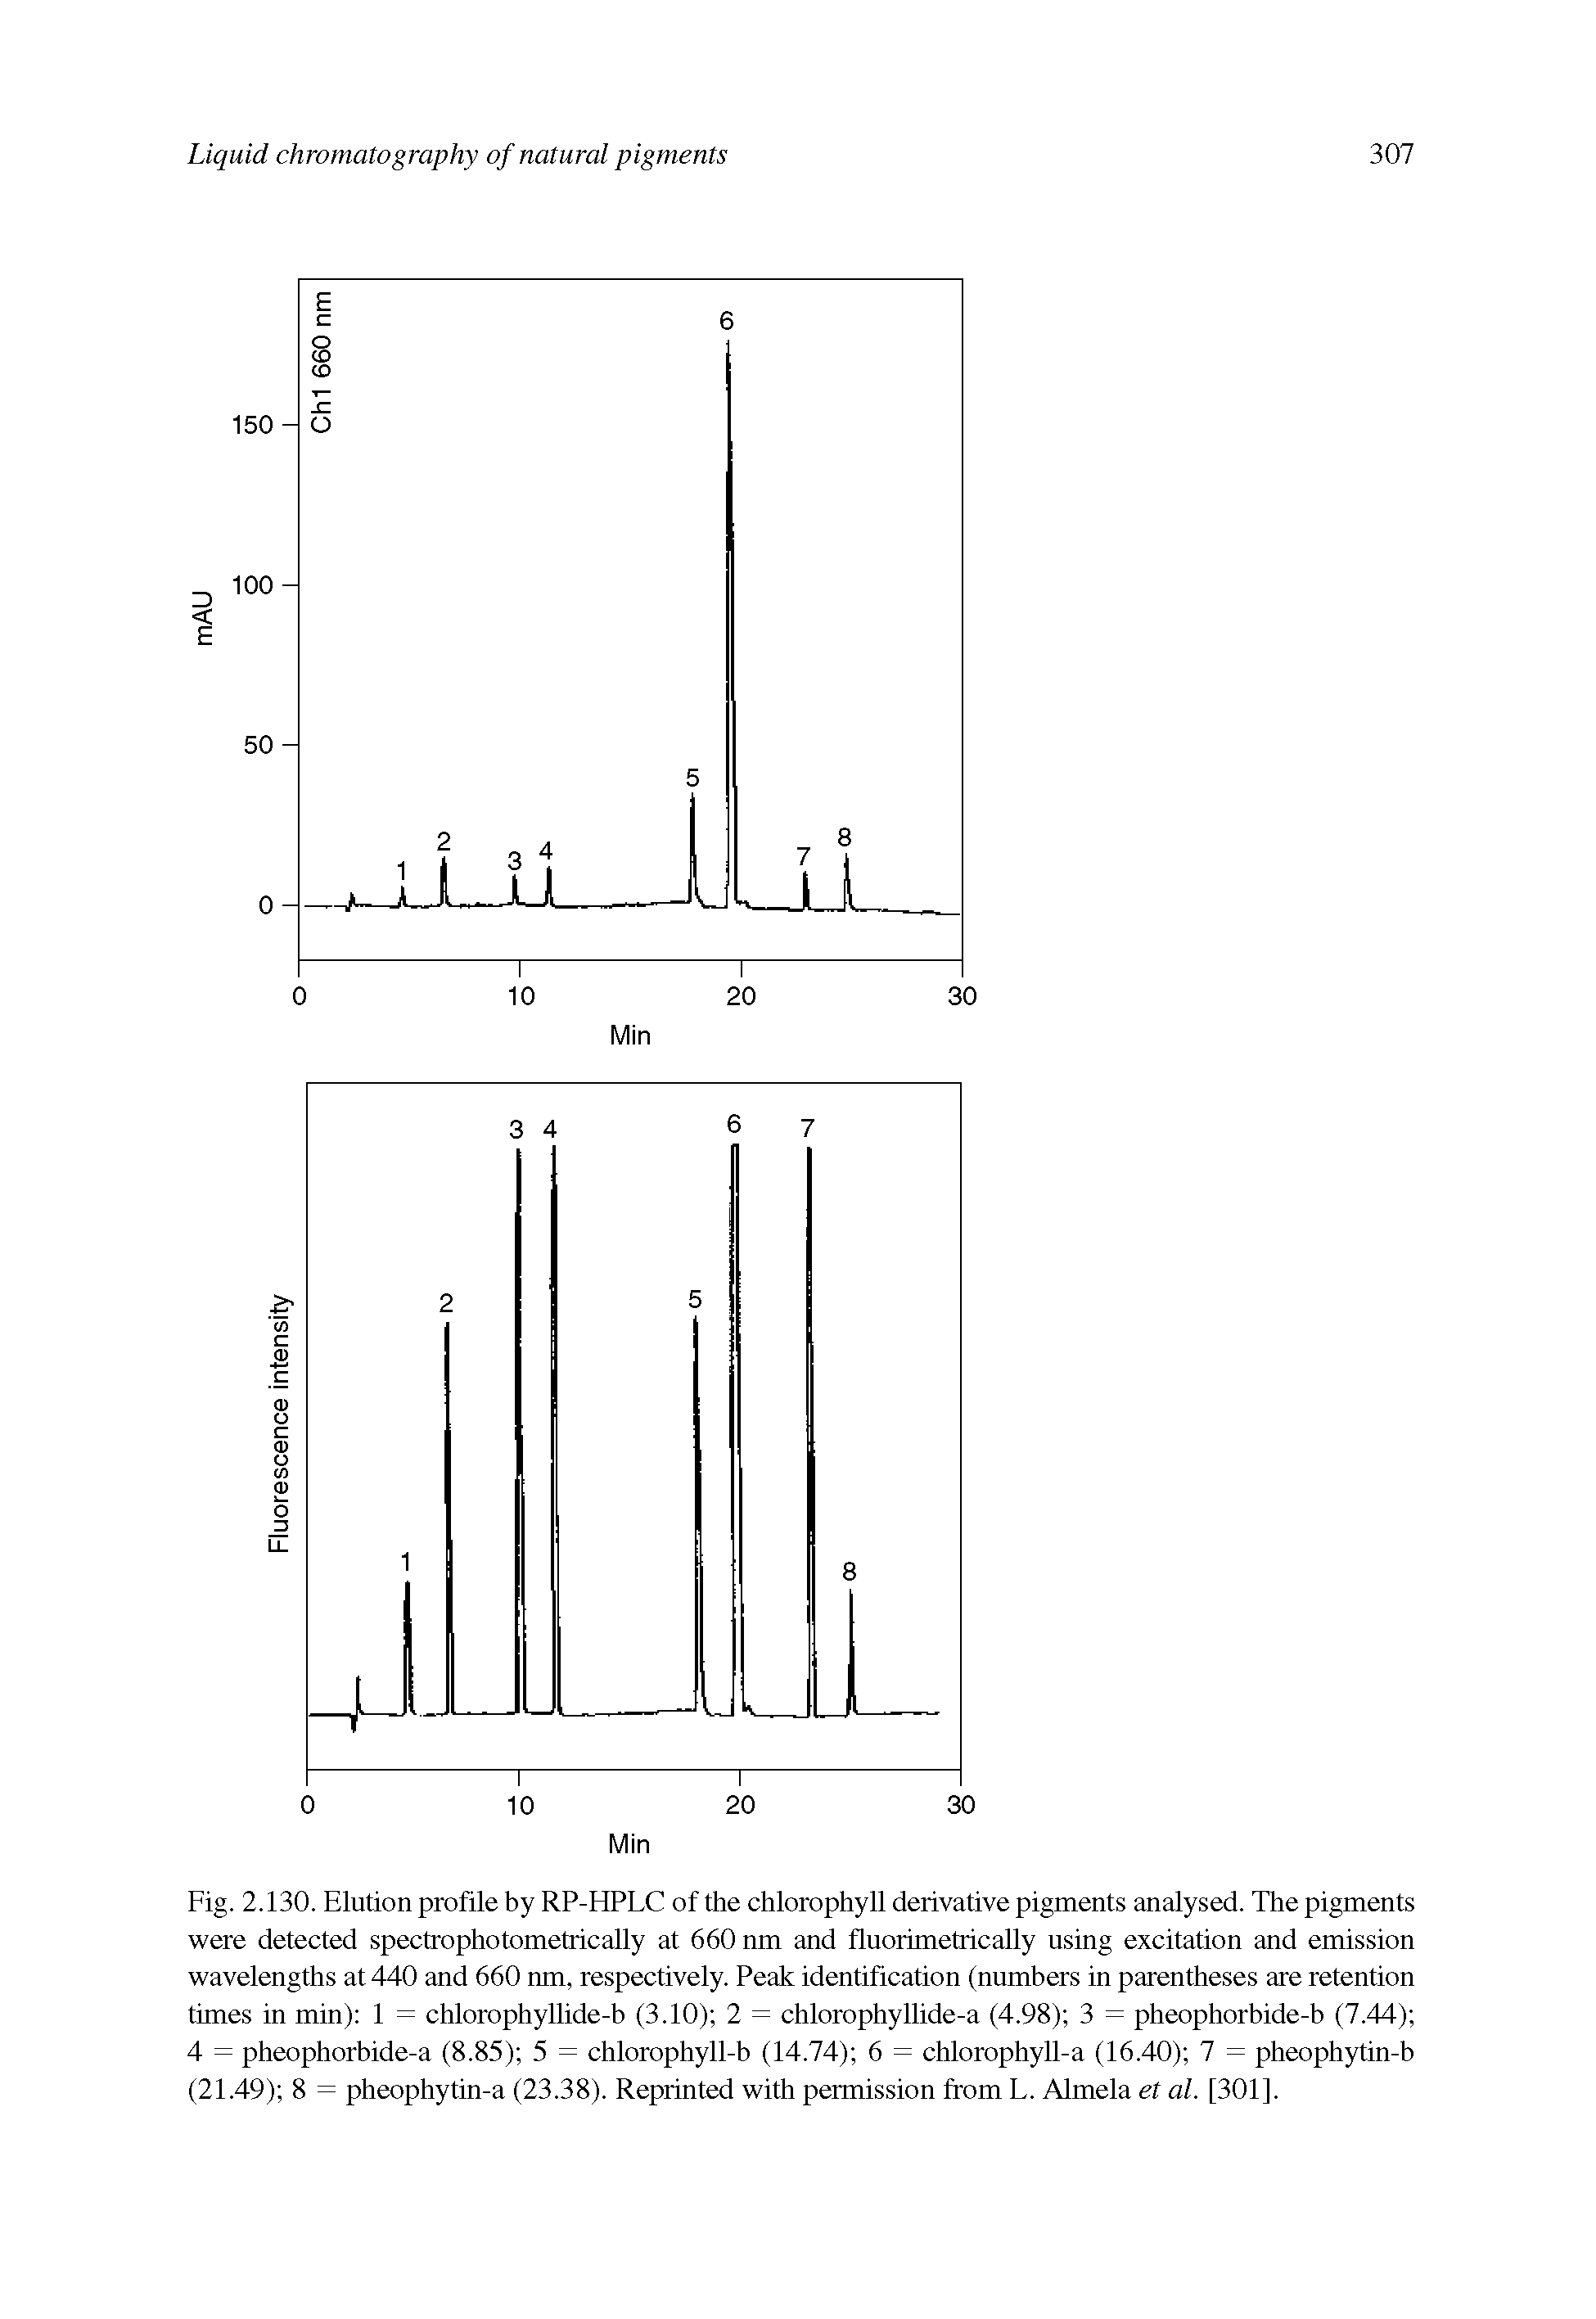 Fig. 2.130. Elution profile by RP-HPLC of the chlorophyll derivative pigments analysed. The pigments were detected spectrophotometrically at 660 nm and fhiorimetrically using excitation and emission wavelengths at 440 and 660 nm, respectively. Peak identification (numbers in parentheses are retention times in min) 1 = chlorophyllide-b (3.10) 2 = chlorophyllide-a (4.98) 3 = pheophorbide-b (7.44) 4 = pheophorbide-a (8.85) 5 = chlorophyll-b (14.74) 6 = chlorophyll-a (16.40) 7 = pheophytin-b (21.49) 8 = pheophytin-a (23.38). Reprinted with permission from L. Almela et al. [301].